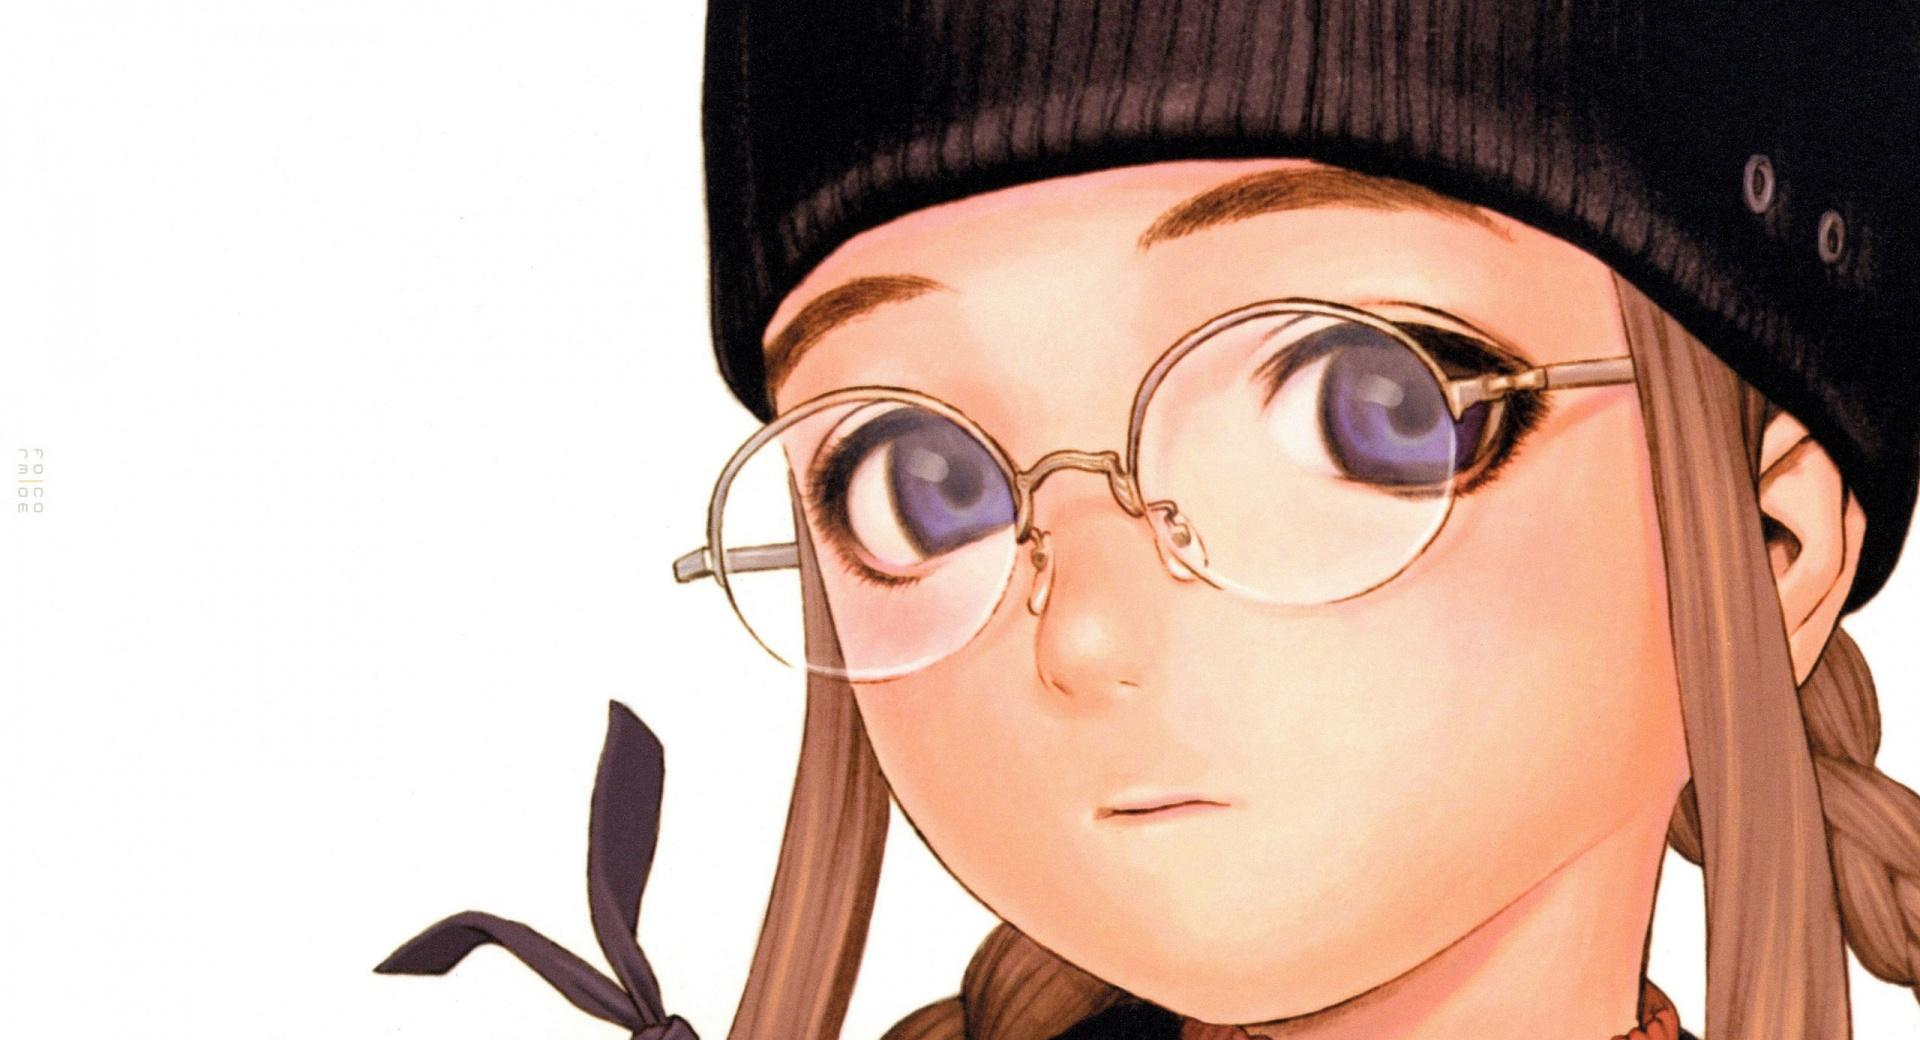 Anime Girl With Glasses wallpapers HD quality